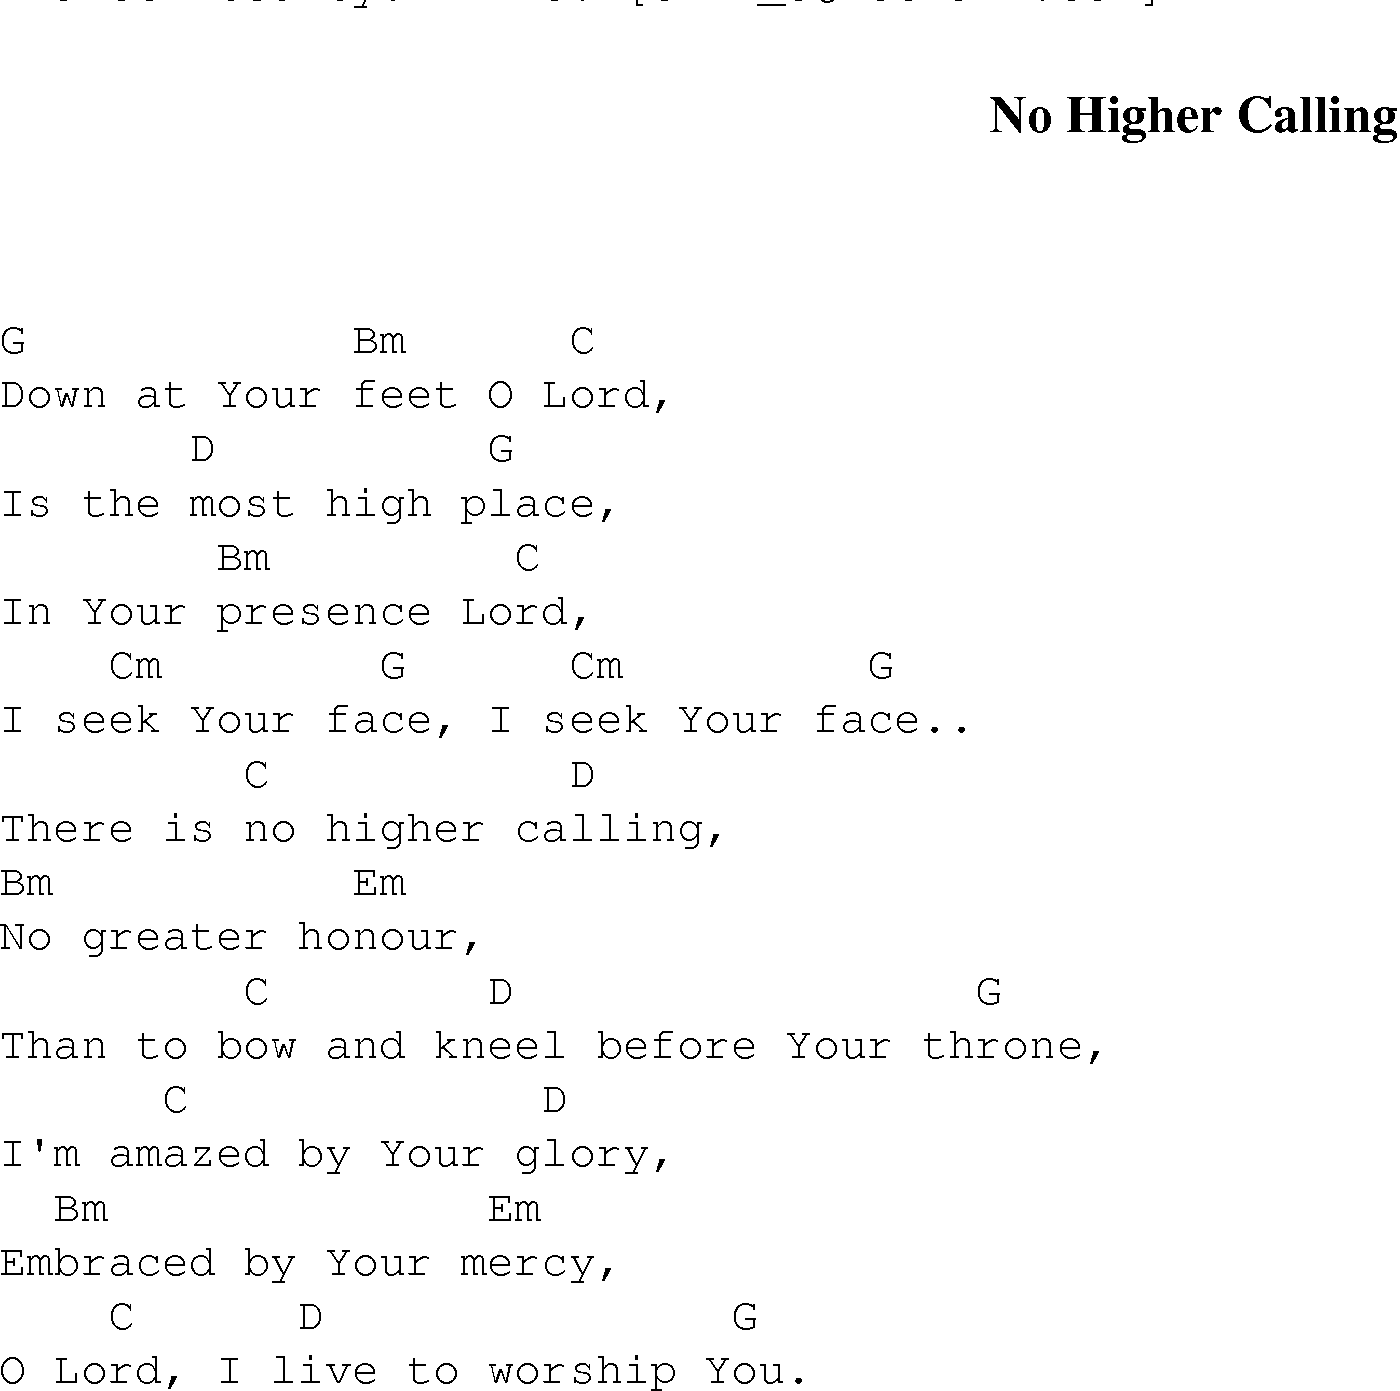 No Higher Calling Christian Gospel Song Lyrics And Chords